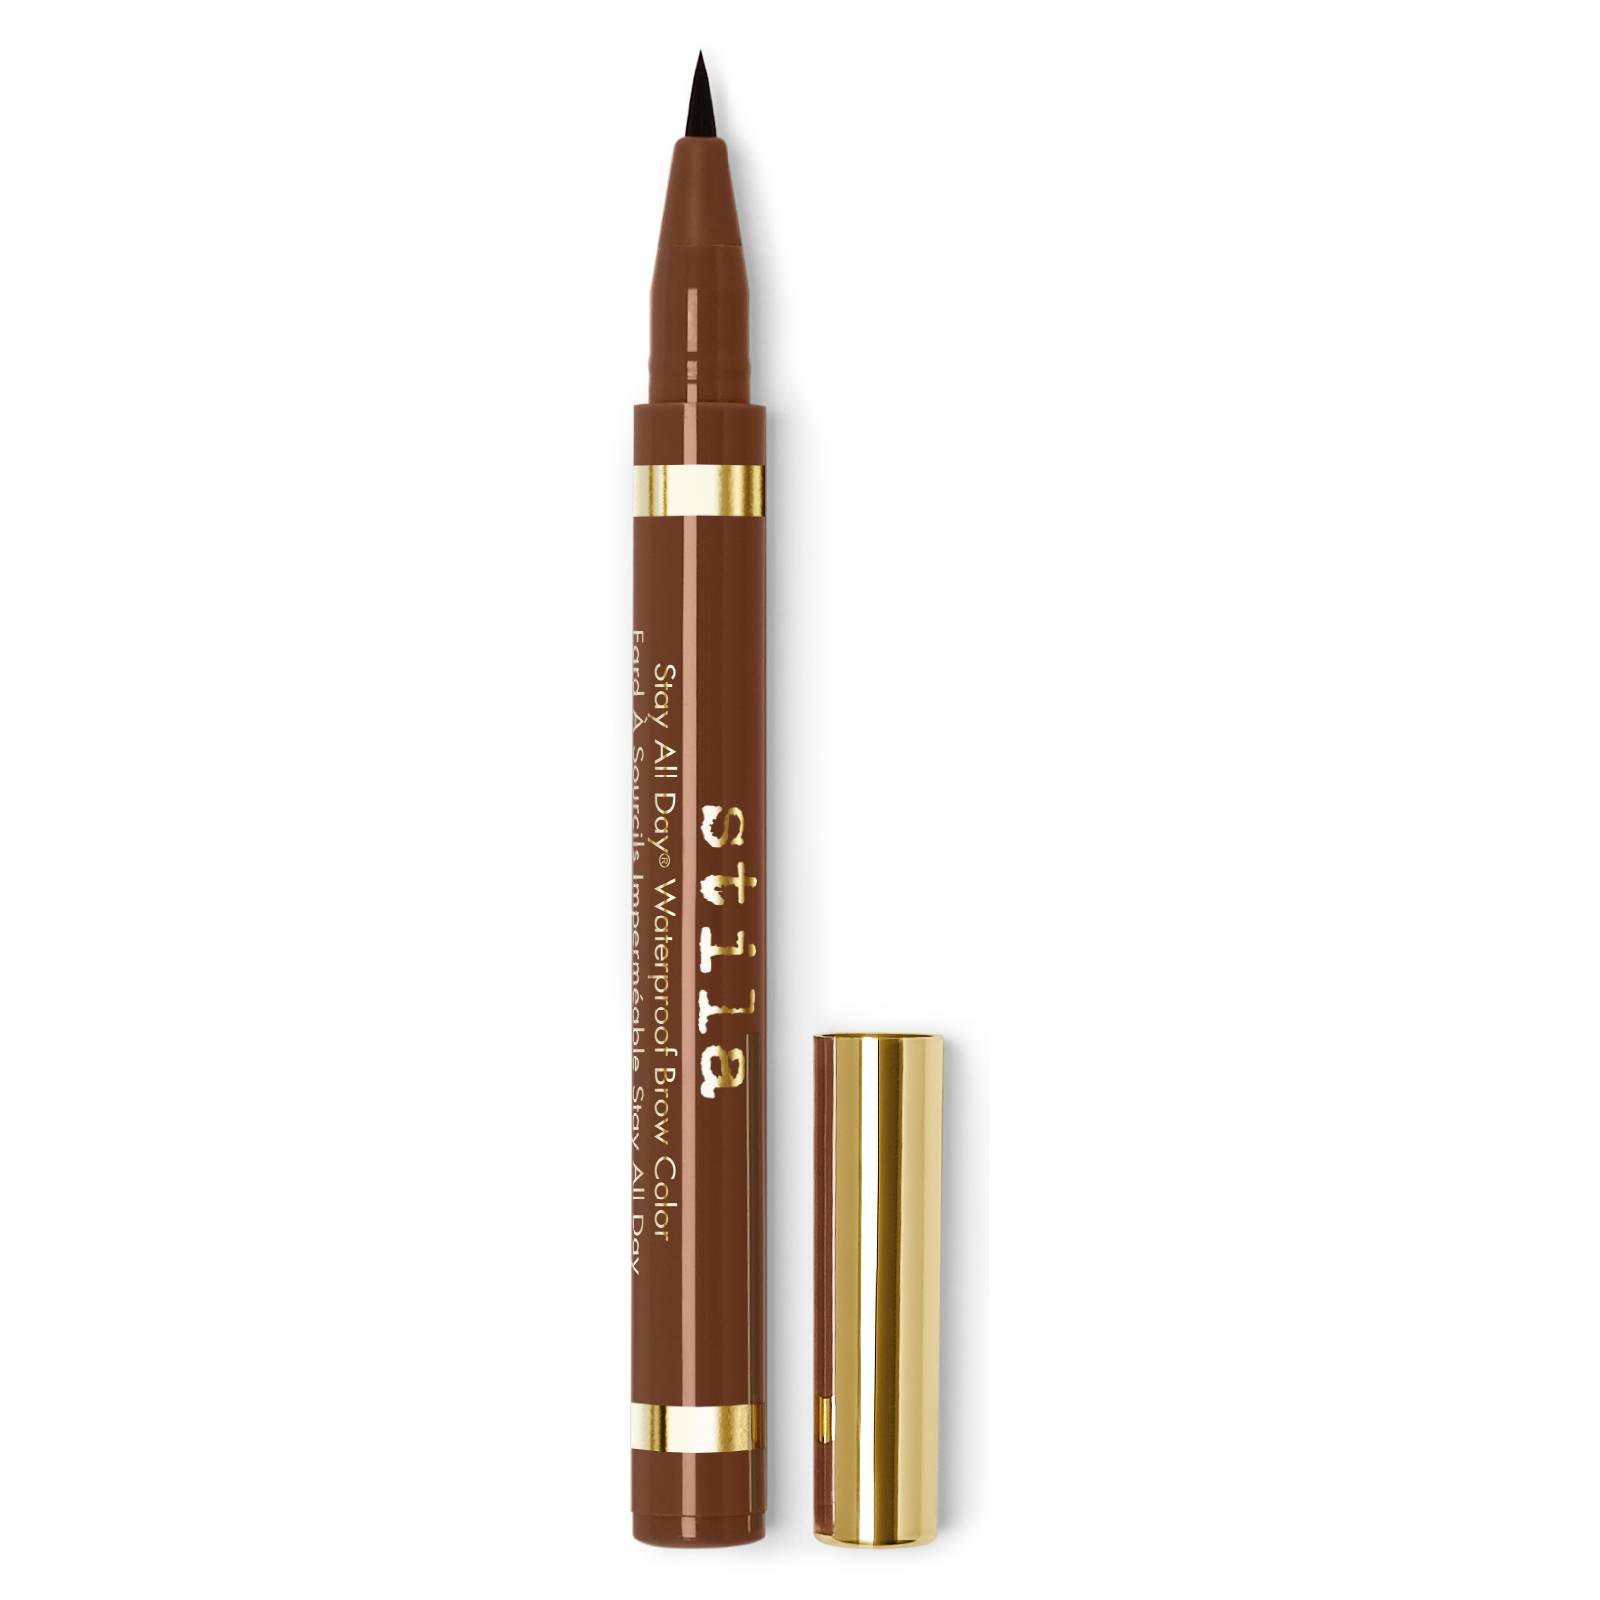 Stila Stay All Day® Waterproof Brow Colour 6ml (Various Shades) - Auburn